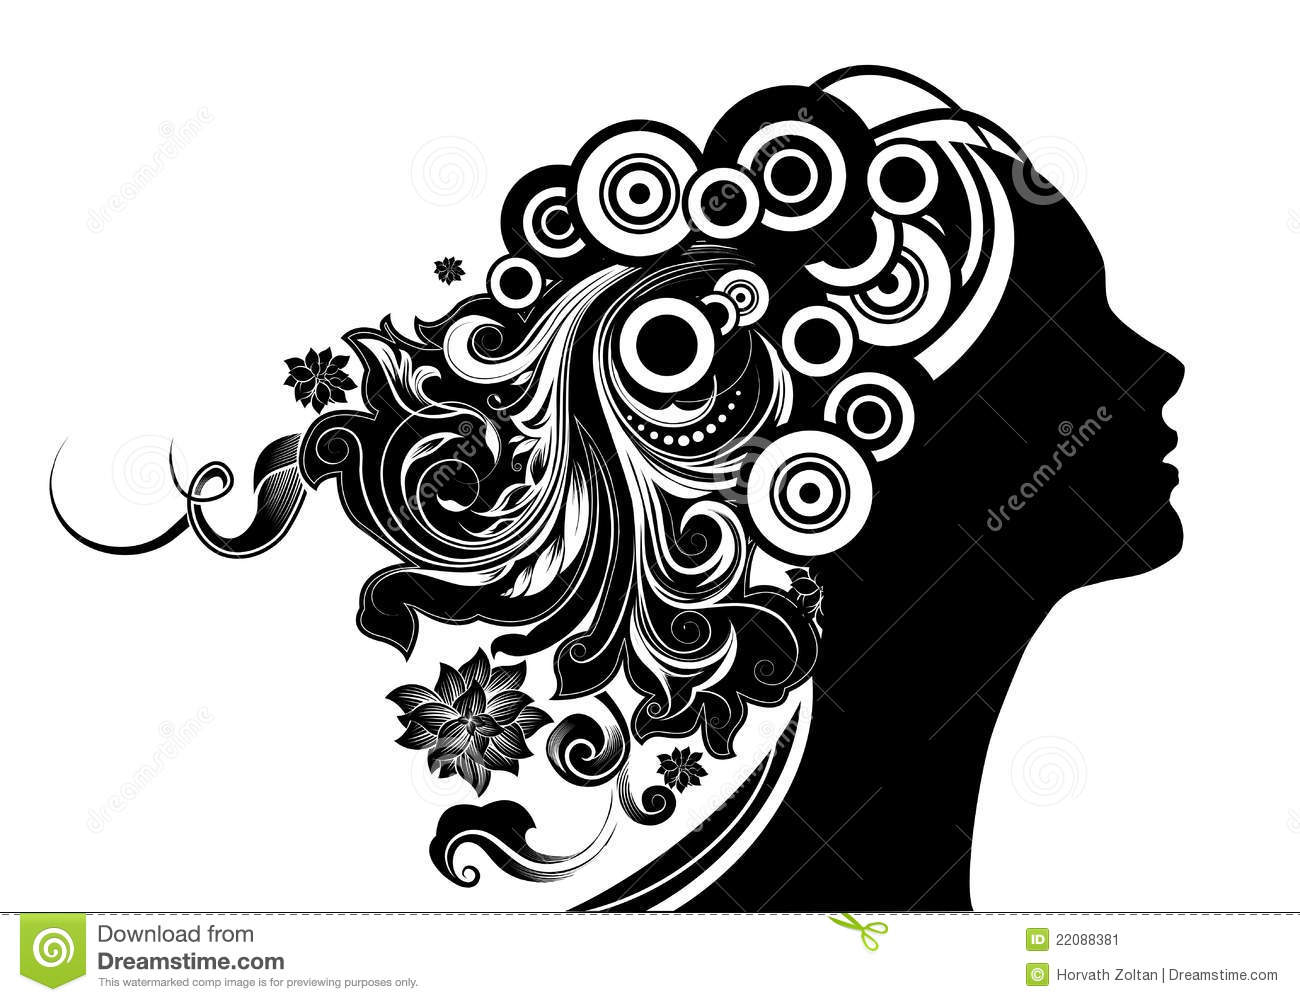 Hairstyle Vector: Vector Illustration Stock Vector